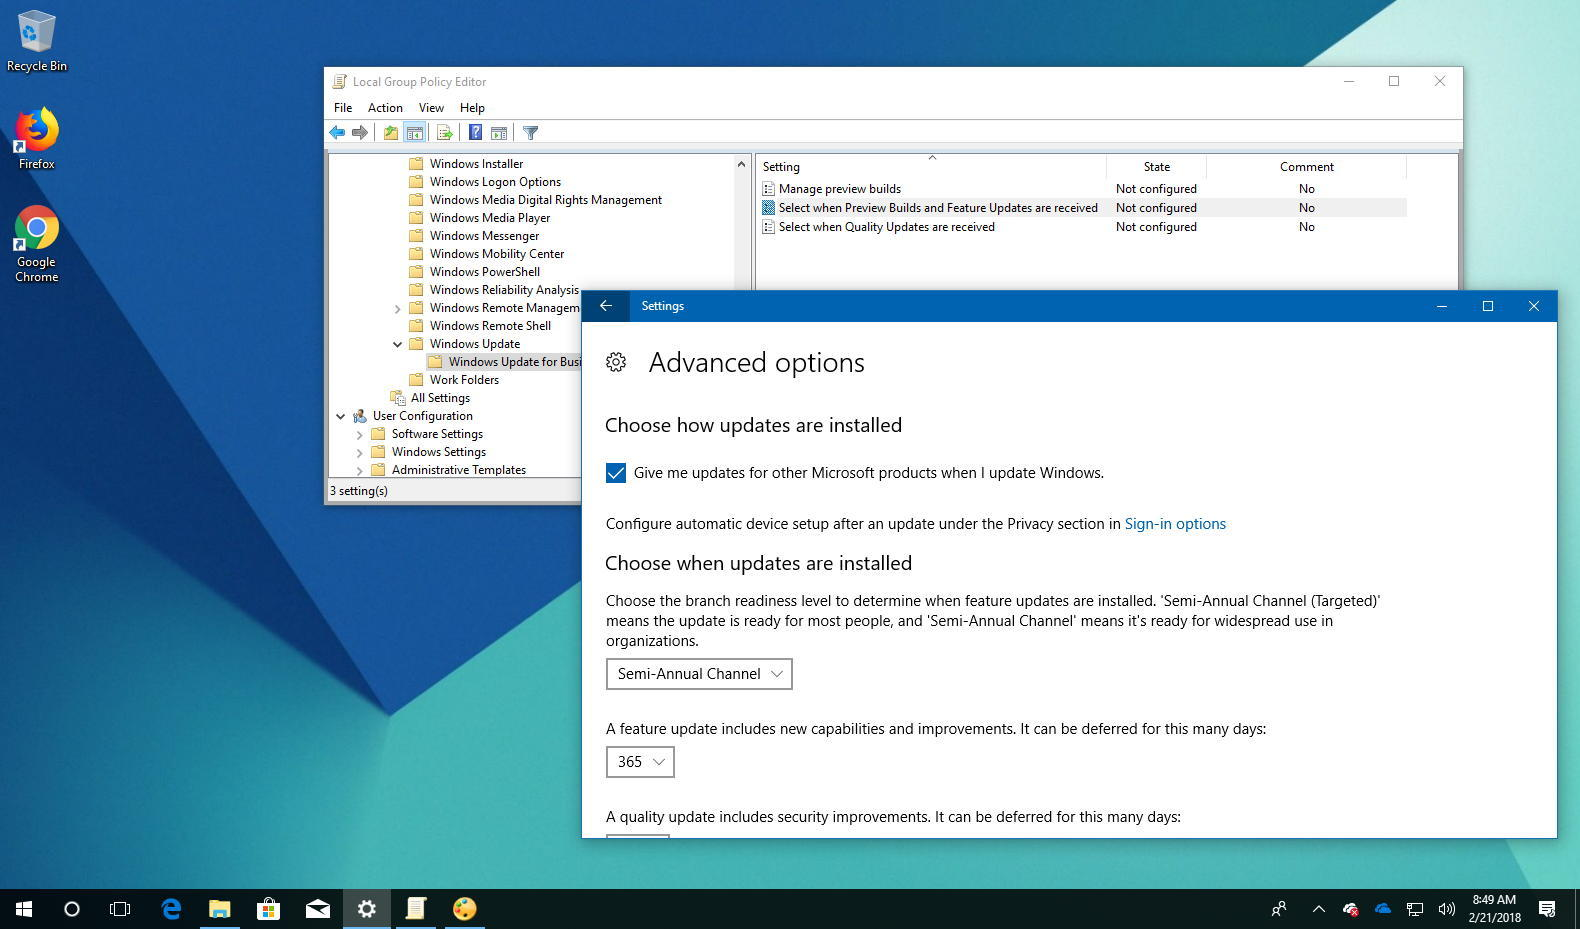 How to prevent Windows 10 from installing the April 2018